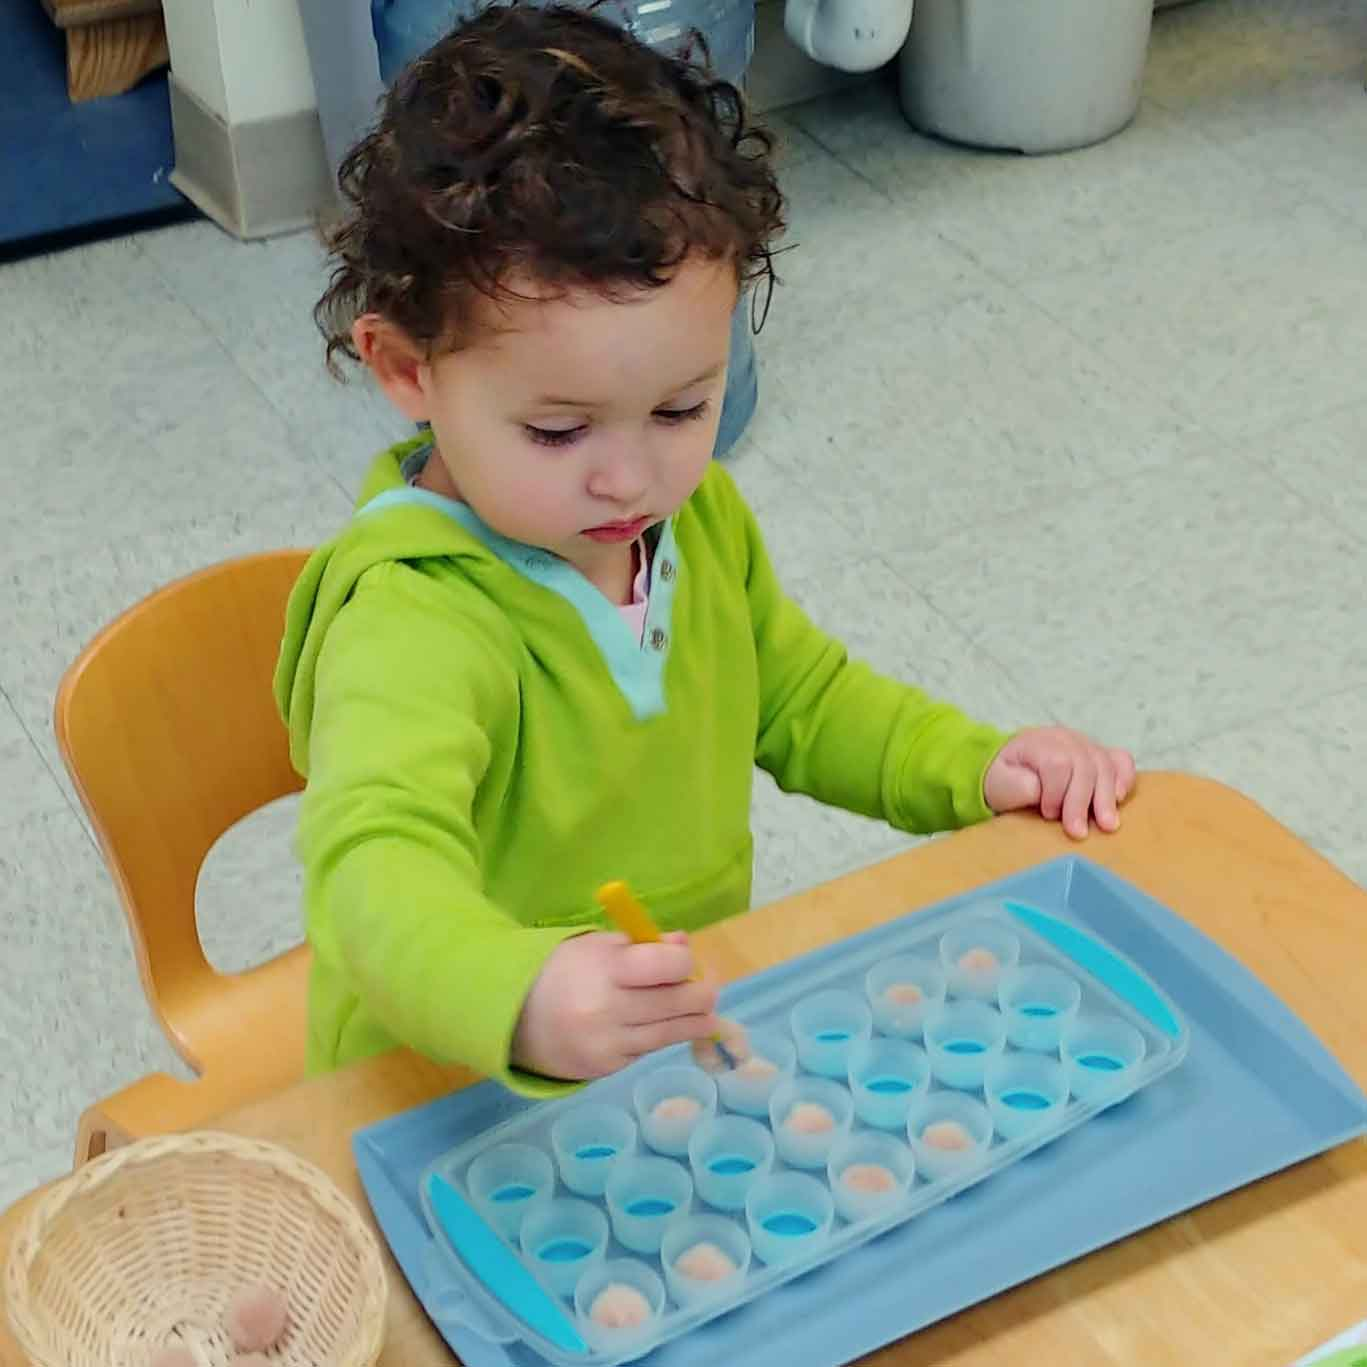 A toddler concentrates on transferring an item from a basket to a small cup